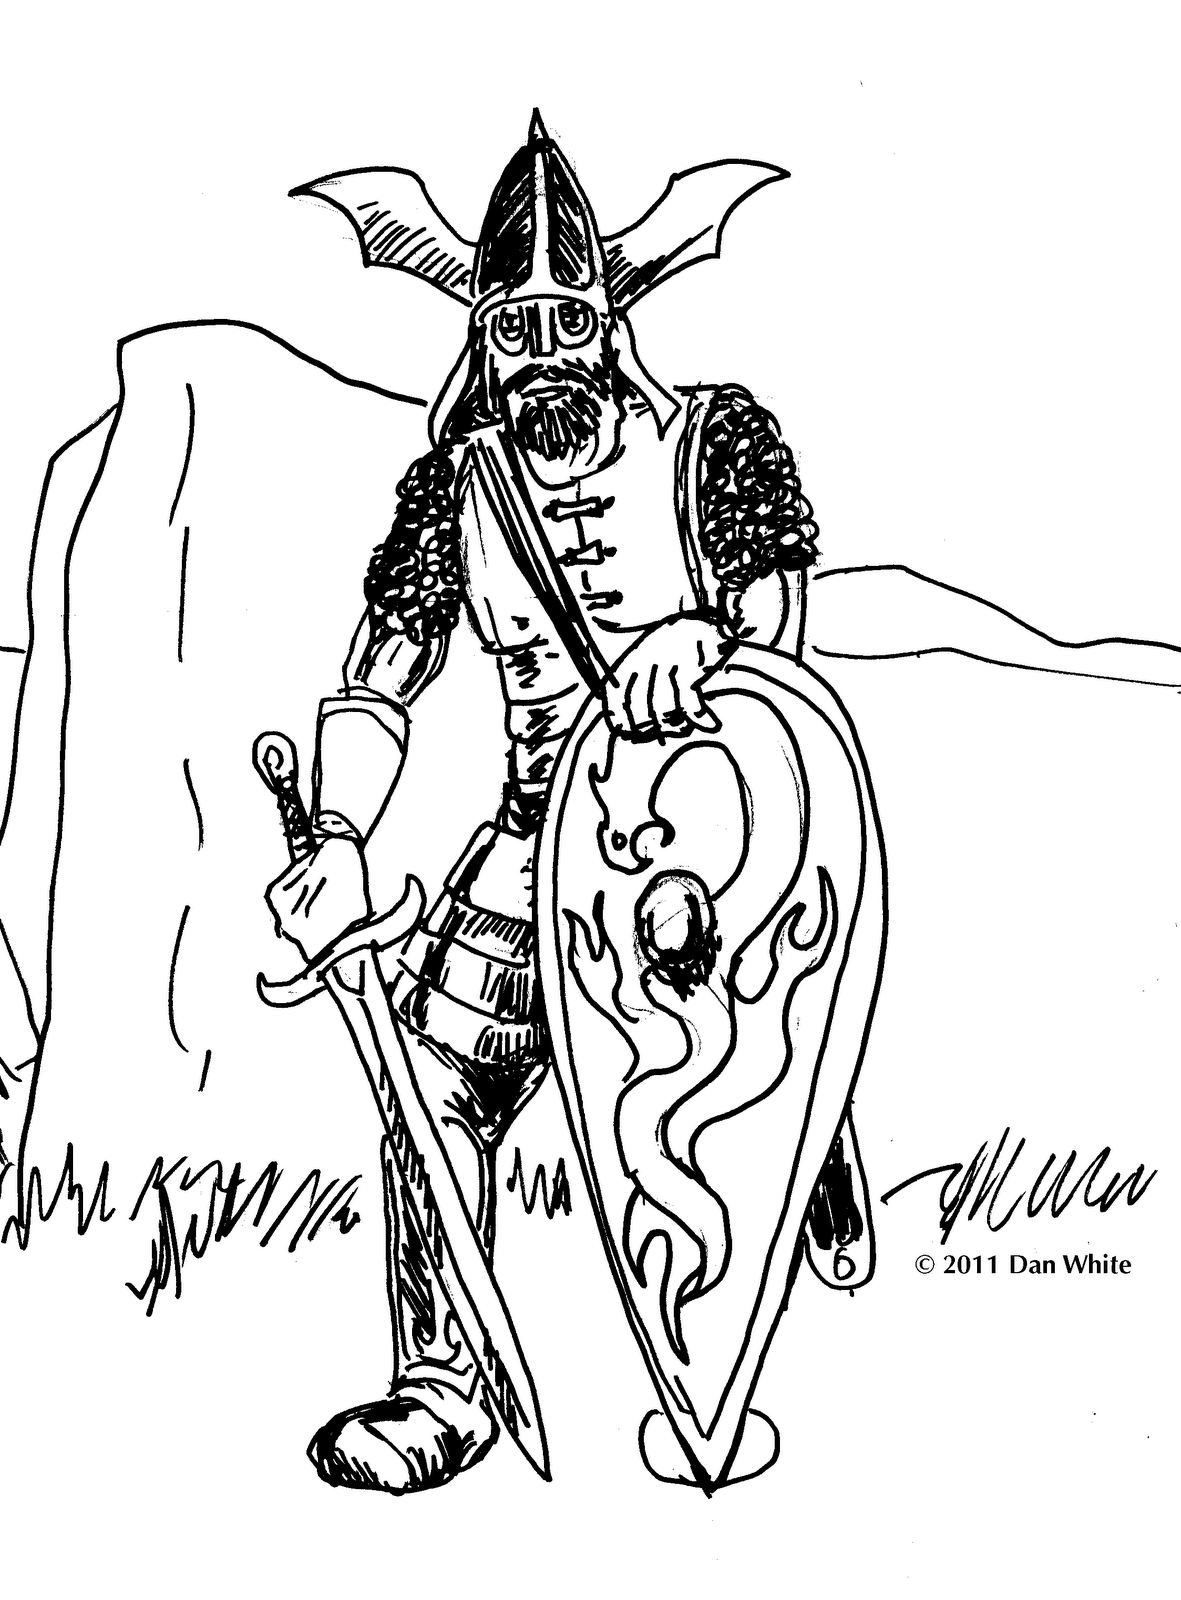 beowulf coloring pages - the gallery for beowulf fighting grendel drawing